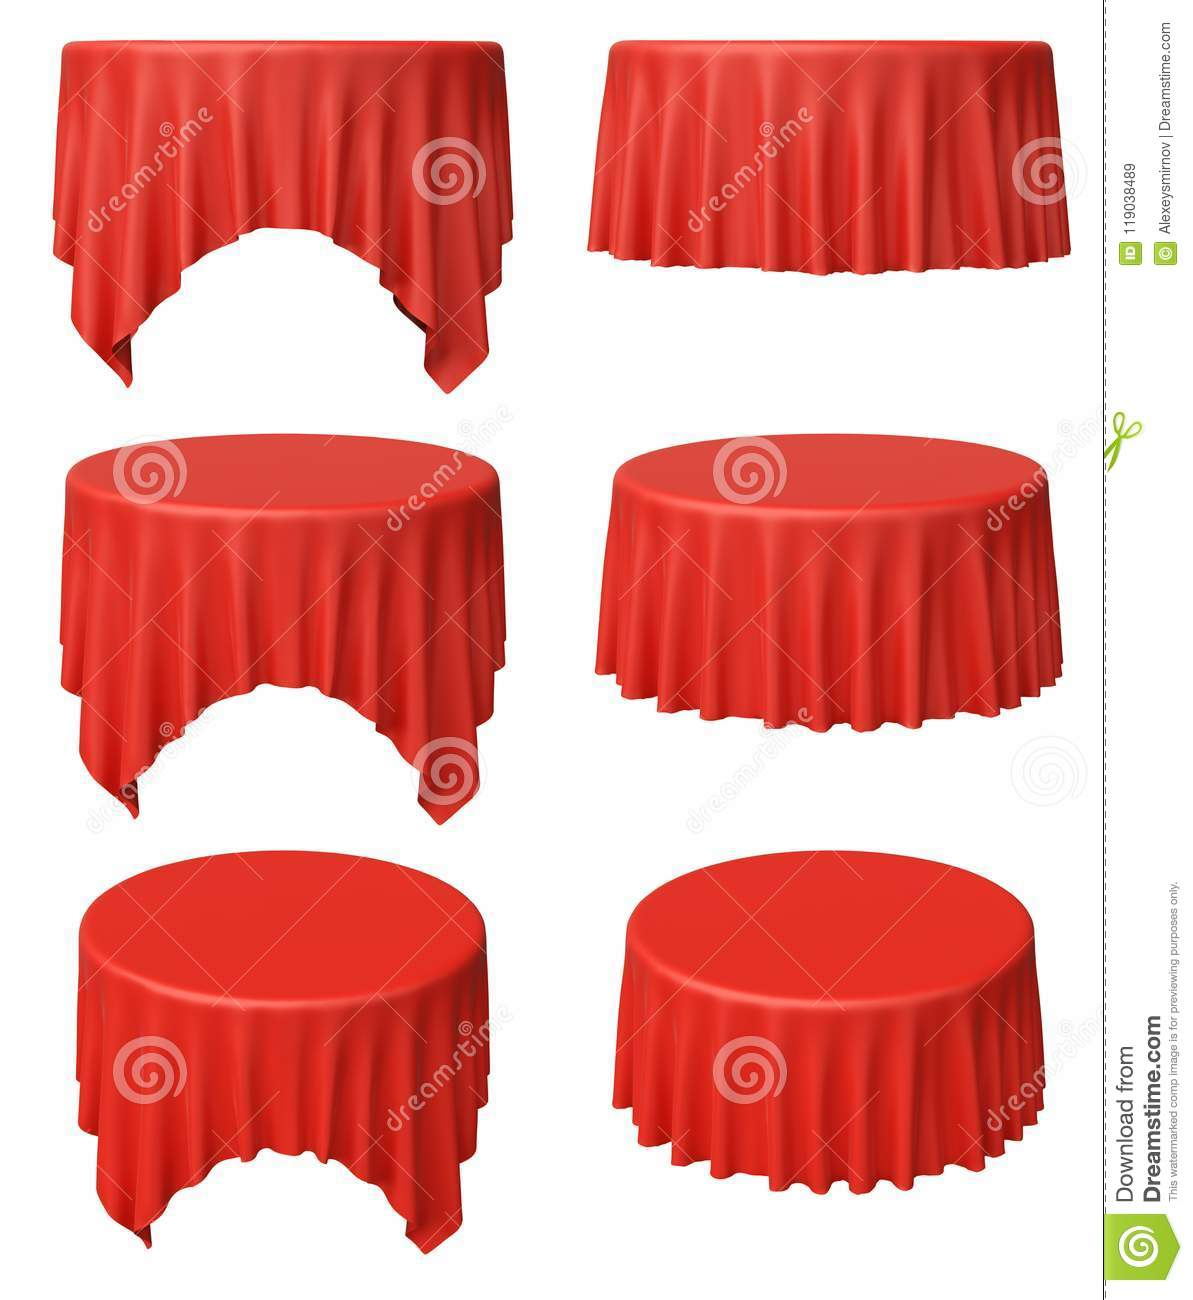 Red Round Table Cloth Set